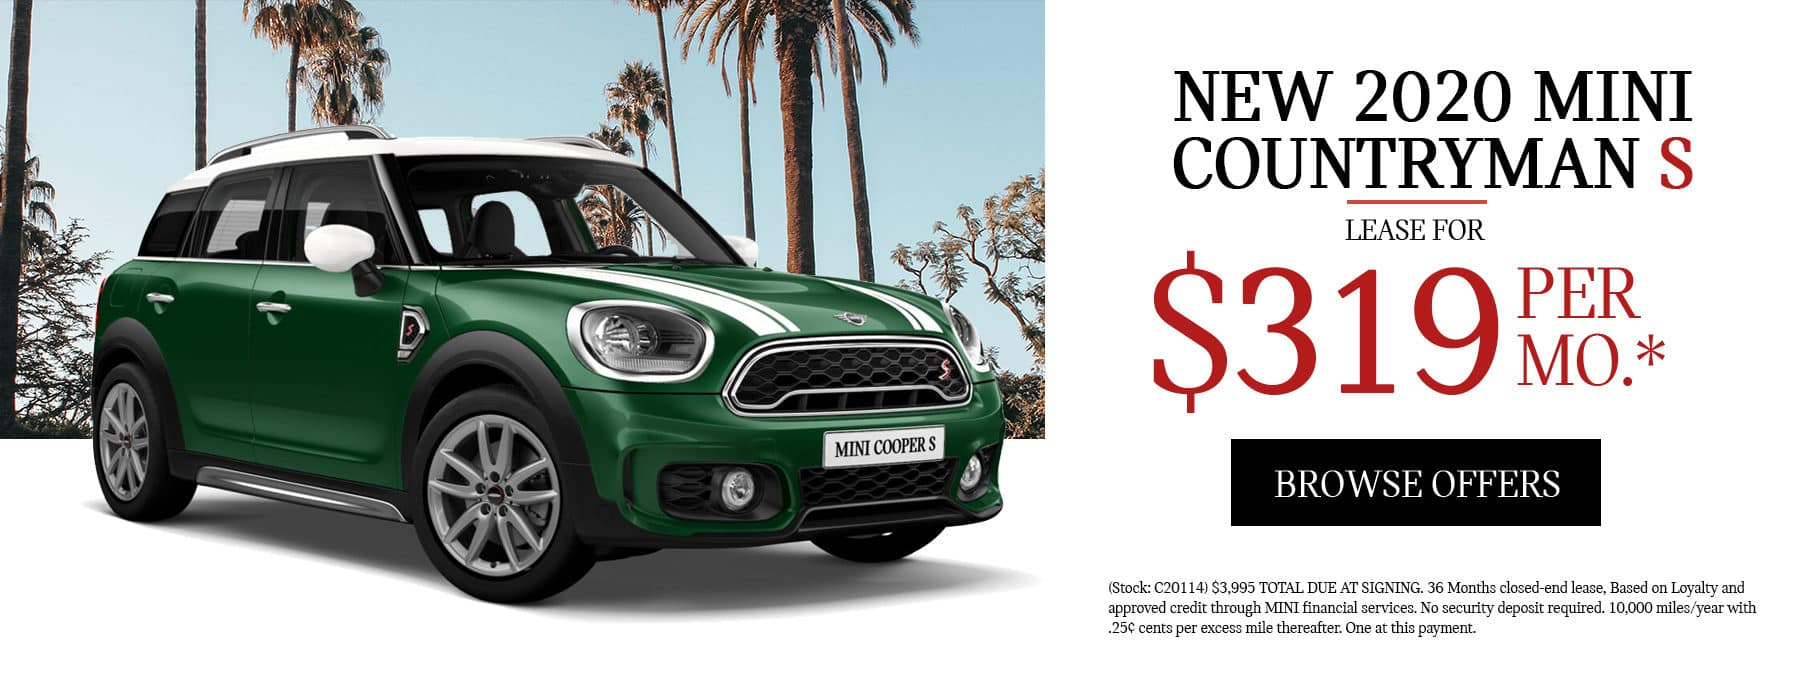 MINI Countryman Lease Special